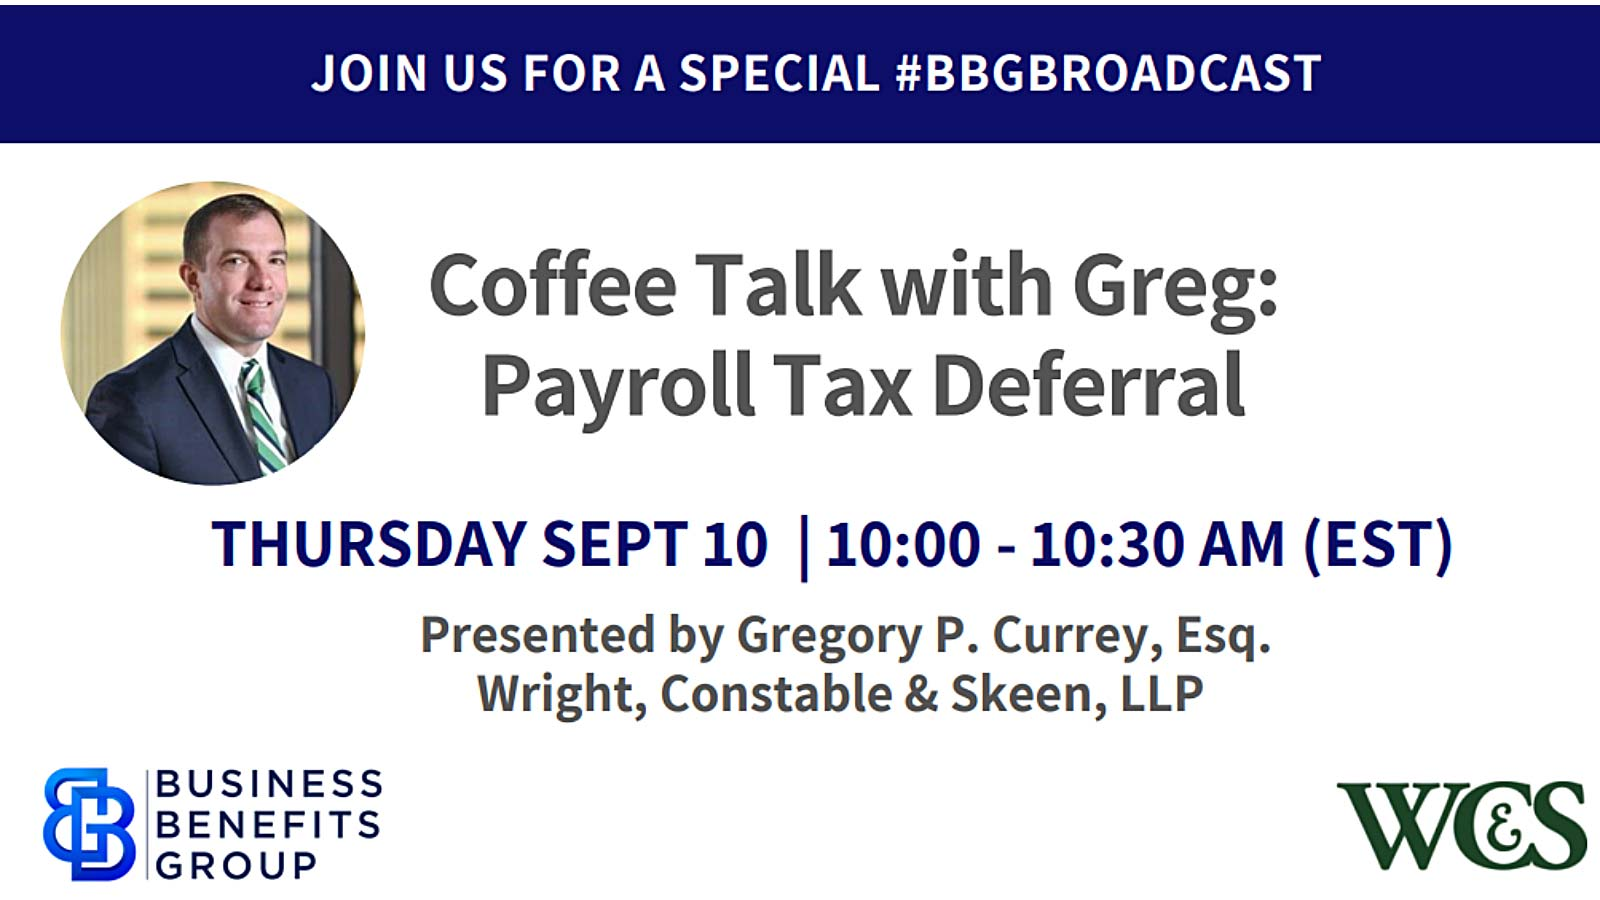 Coffee Talk With Greg: Payroll Tax Deferral